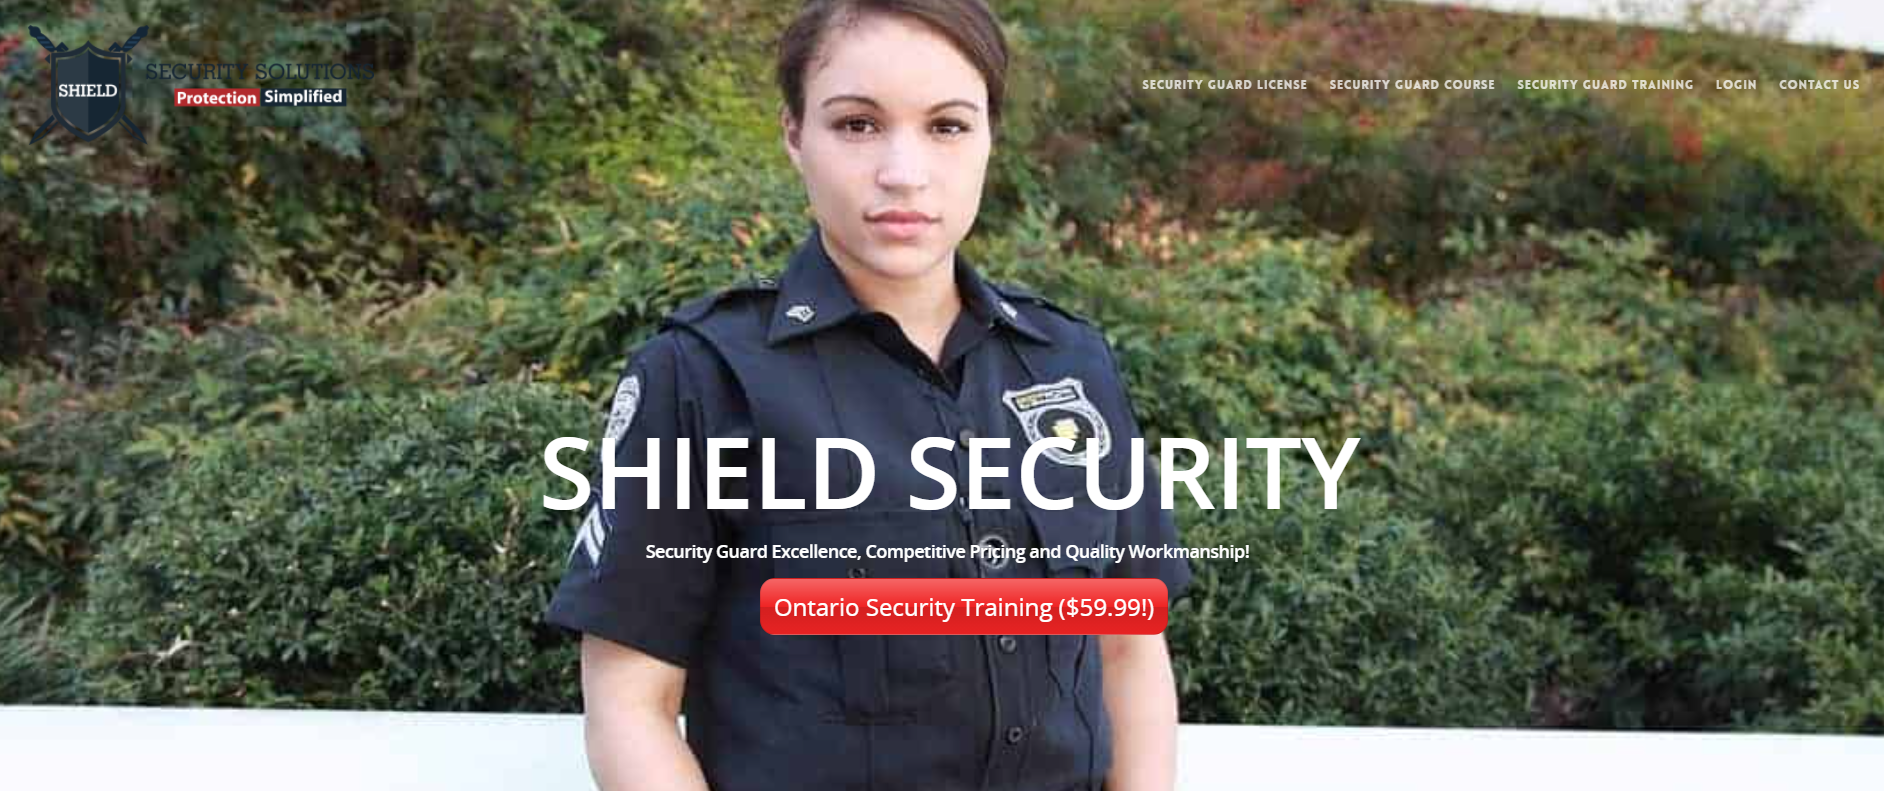 Ontario-Security-Training-Shield-Security-Solutions-